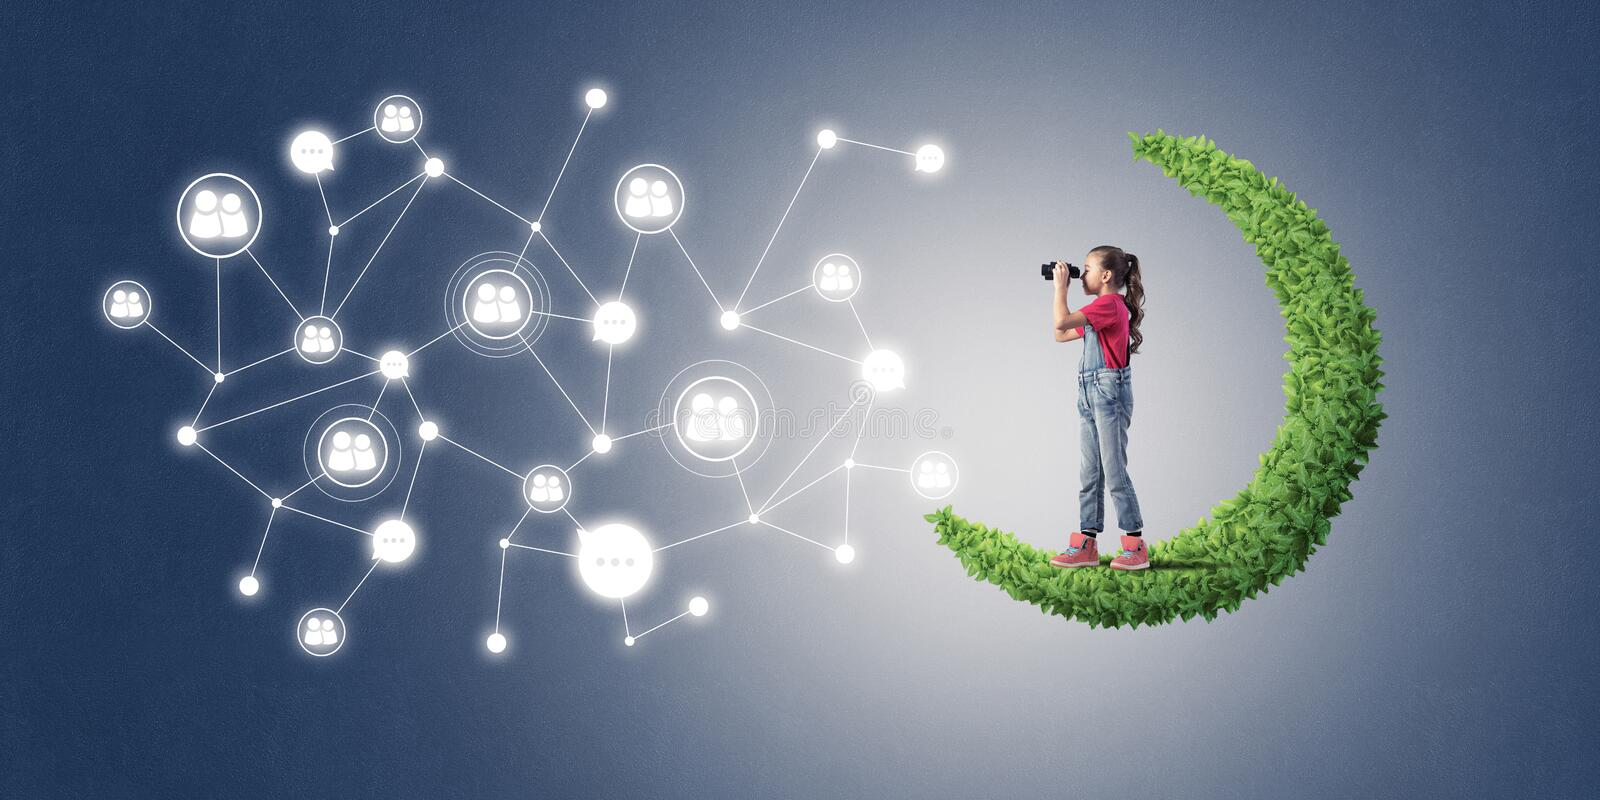 Download Idea Of Children Internet Communication Or Online Playing And Pa Stock Photo - Image: 101499194